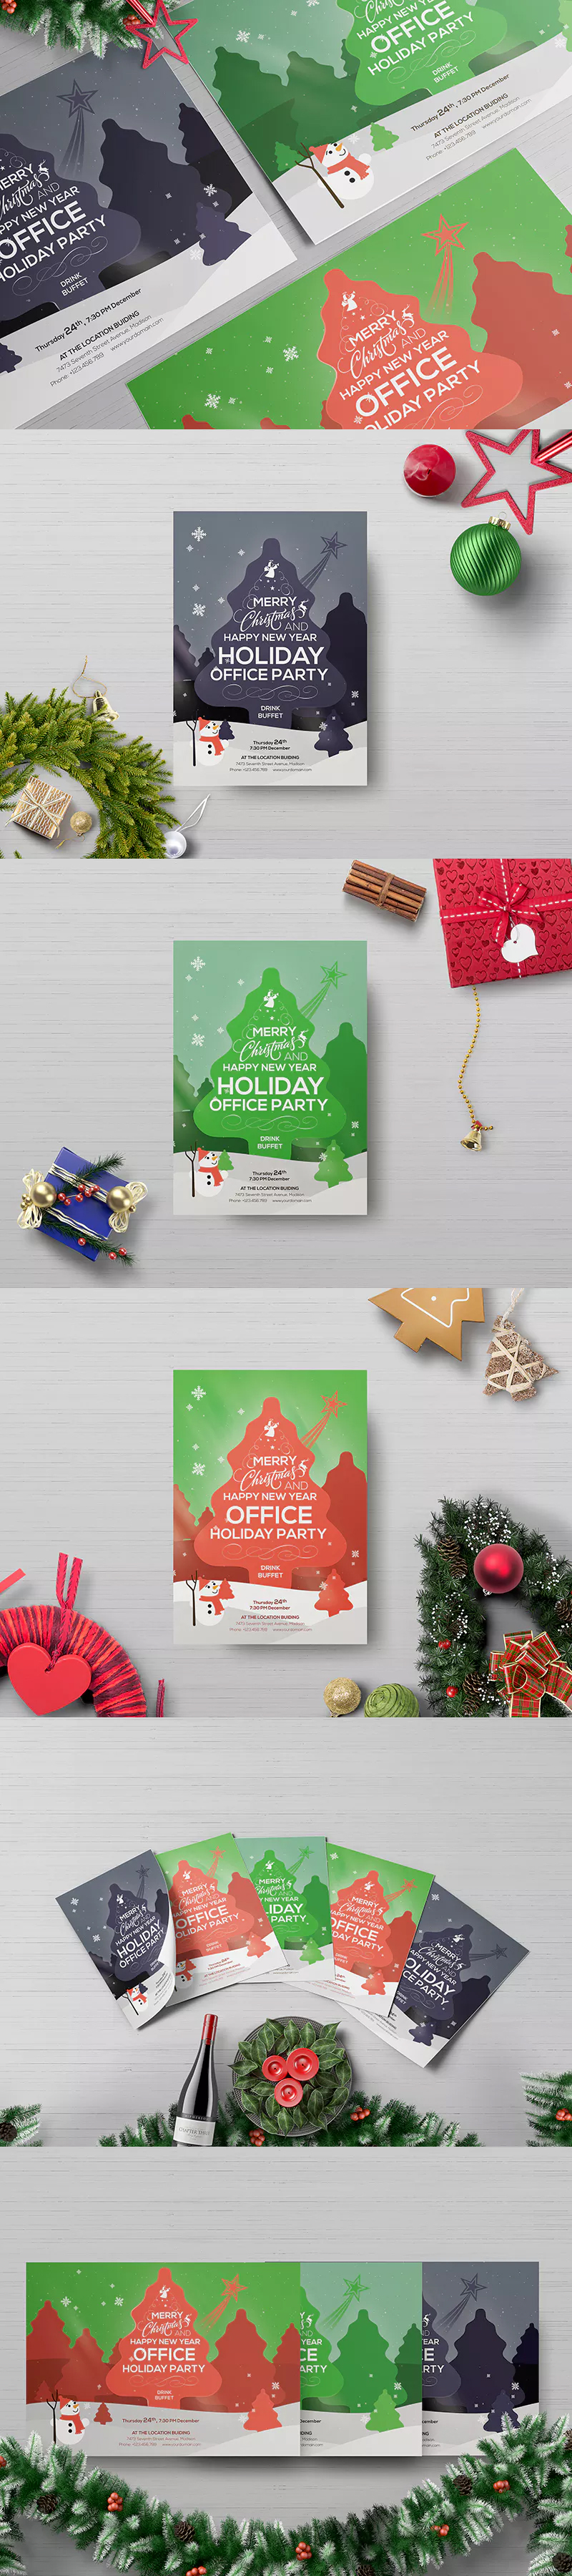 Office Holiday Party  Flyer Template Psd A  Flyer Design